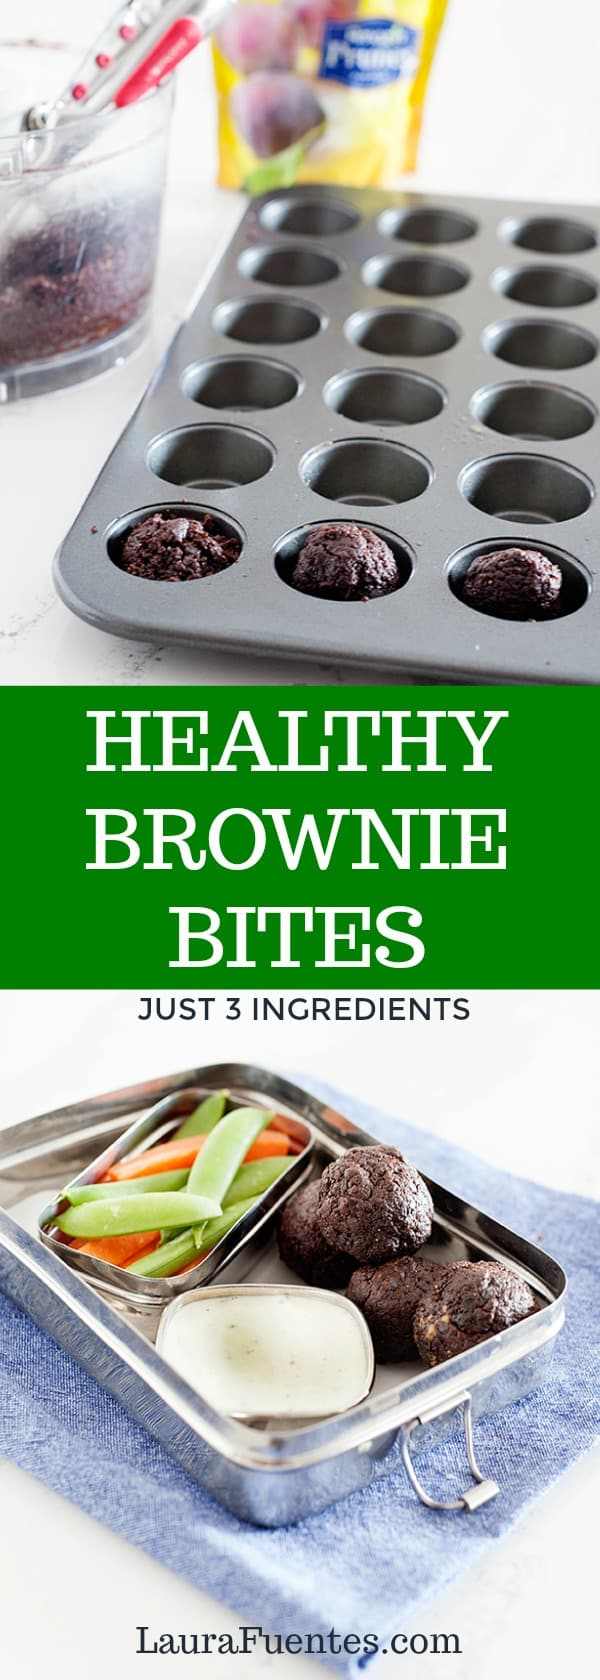 these healthy brownie bites have just 3 ingredients and are super easy to make! they are a healthy snack or treat for the lunchbox